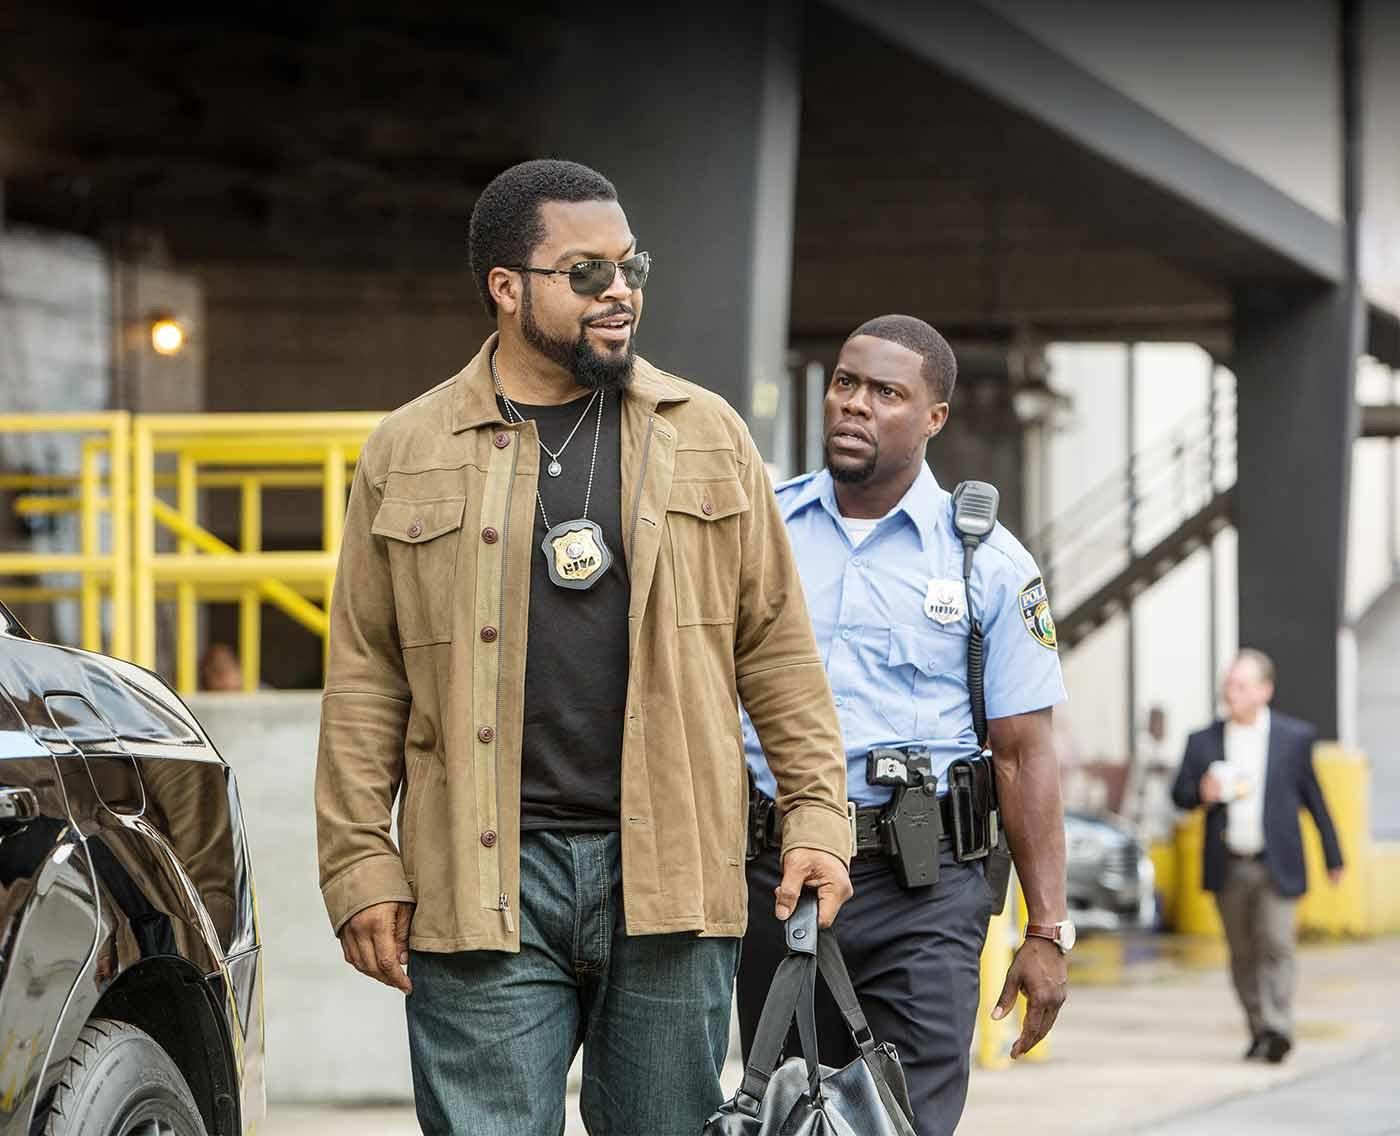 Check out all the movie photos for 'Ride Along 2'